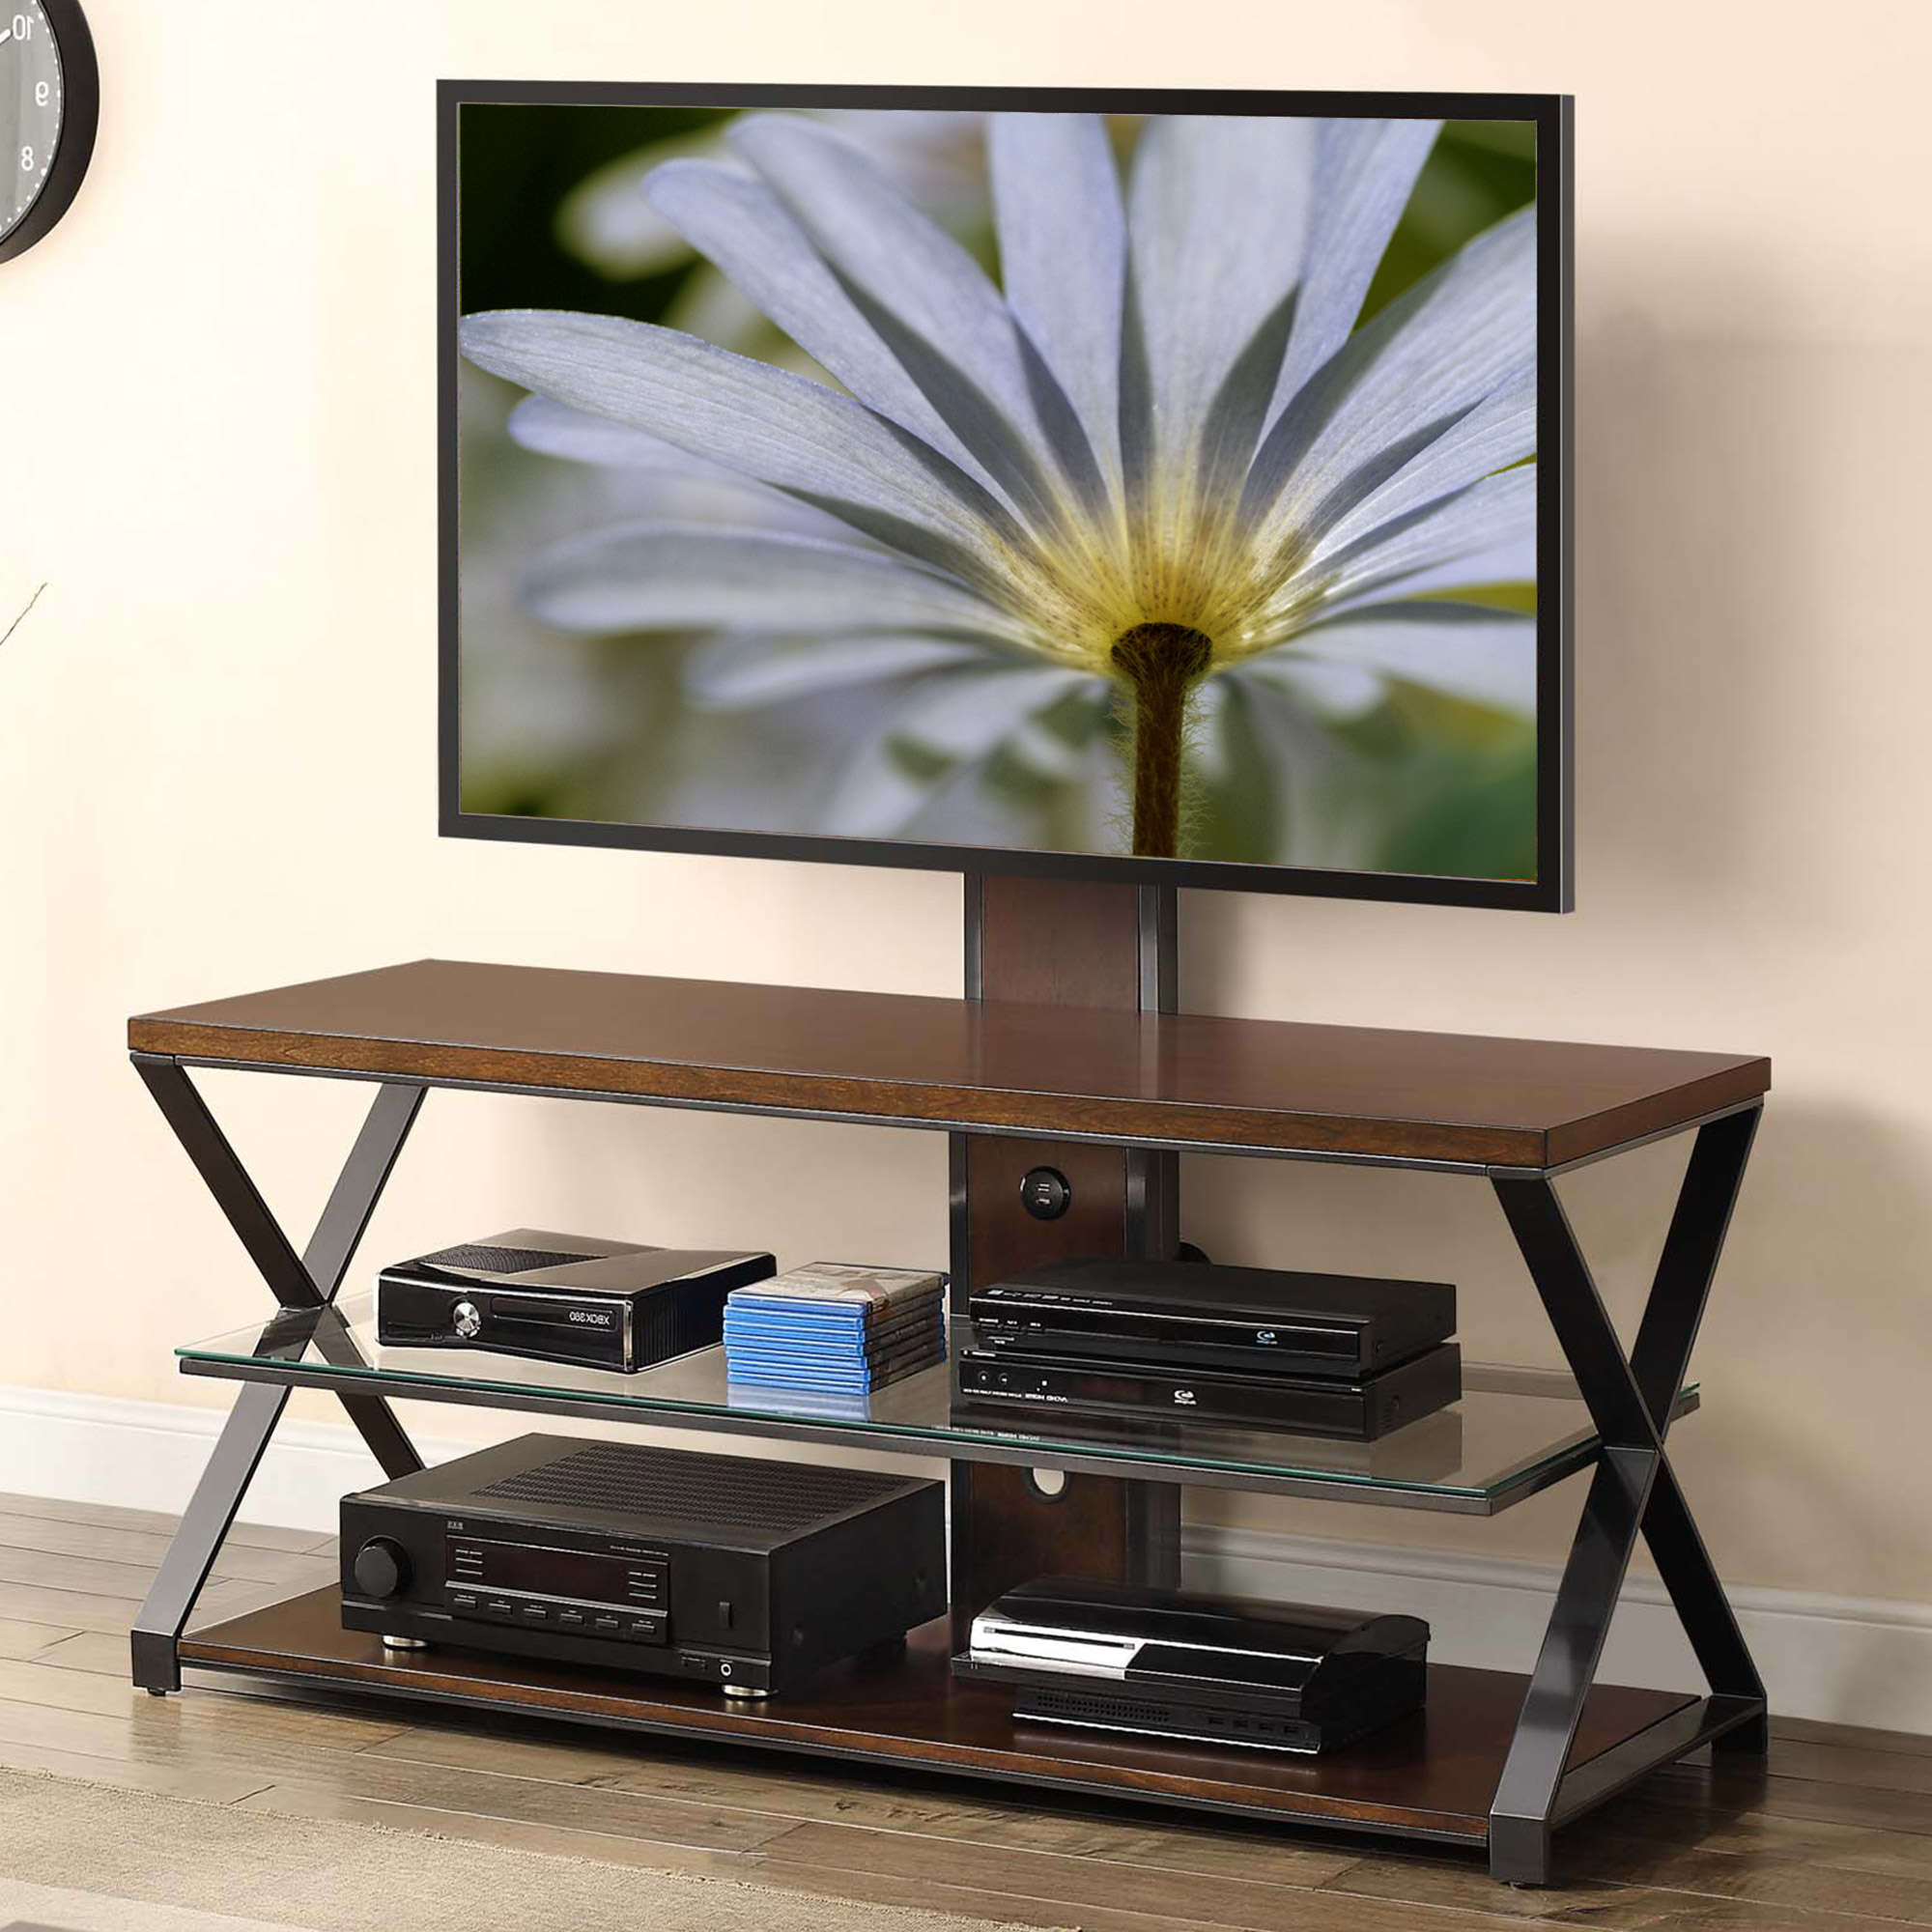 "Jaxon 3 In 1 Cognac Tv Stand For Tvs Up To 70"" – Walmart Throughout Jaxon 65 Inch Tv Stands (View 10 of 20)"